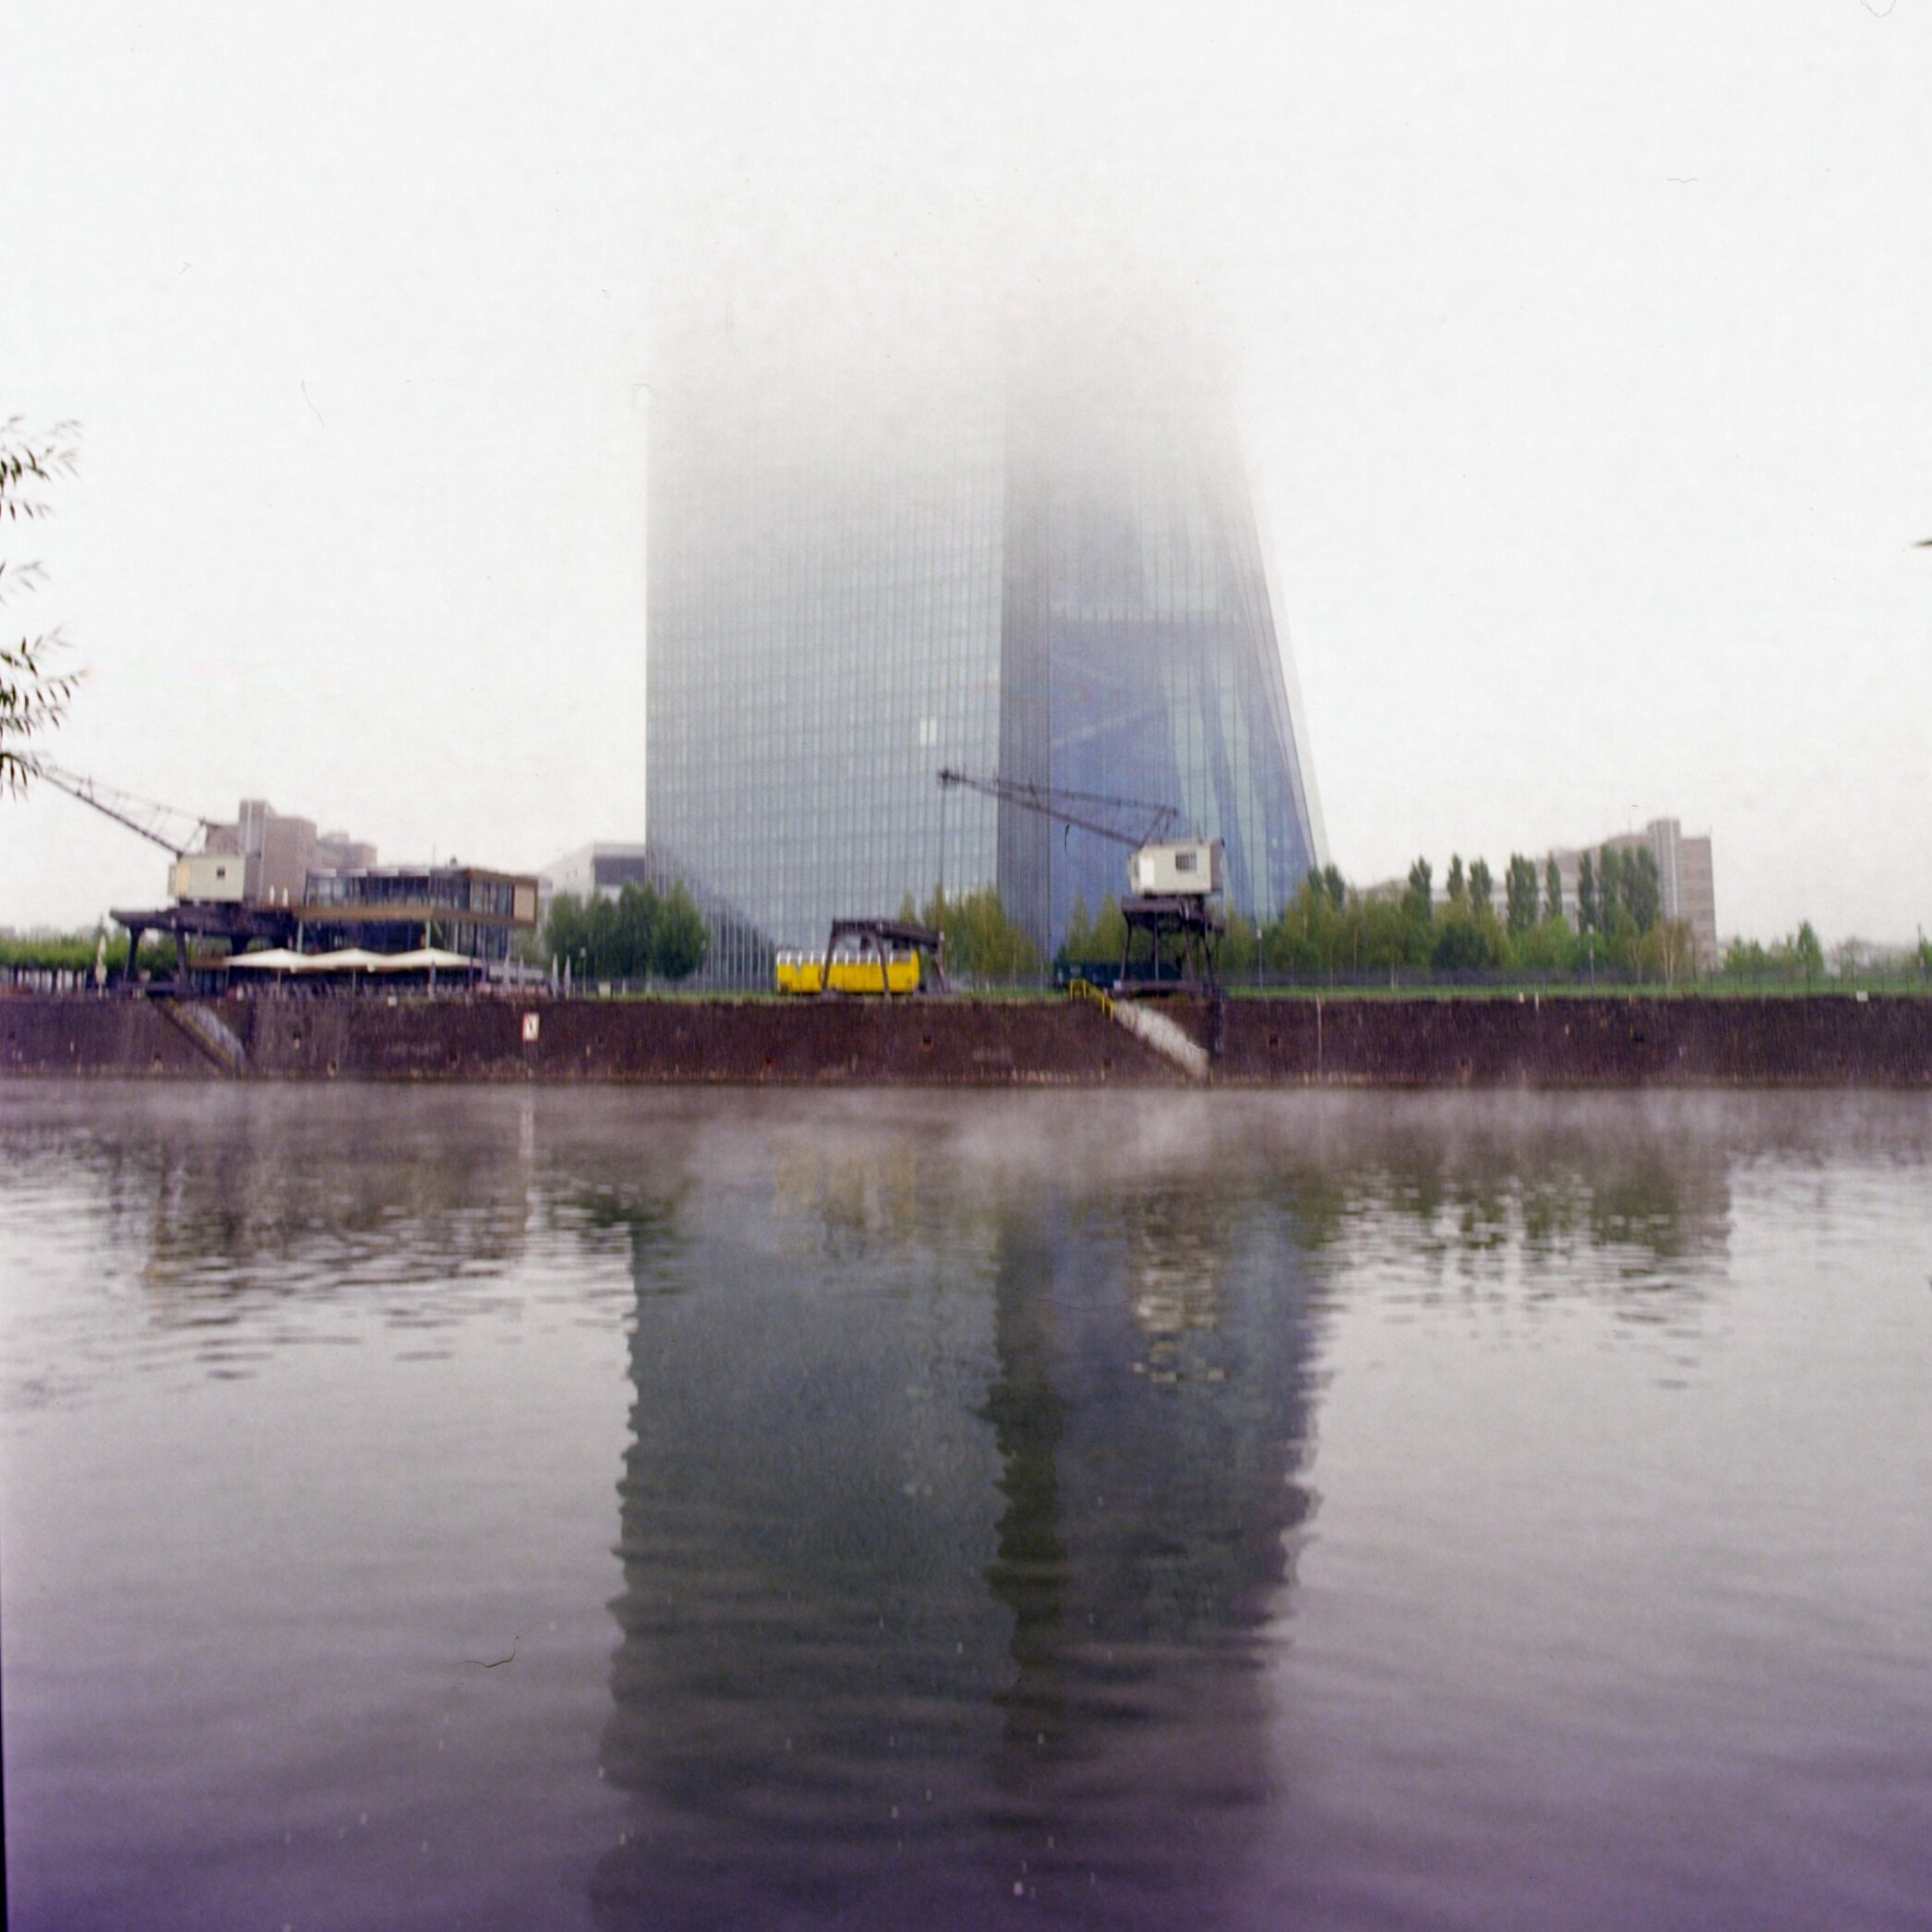 European Central Bank in fog. Slight magenta cast visible at the bottom.